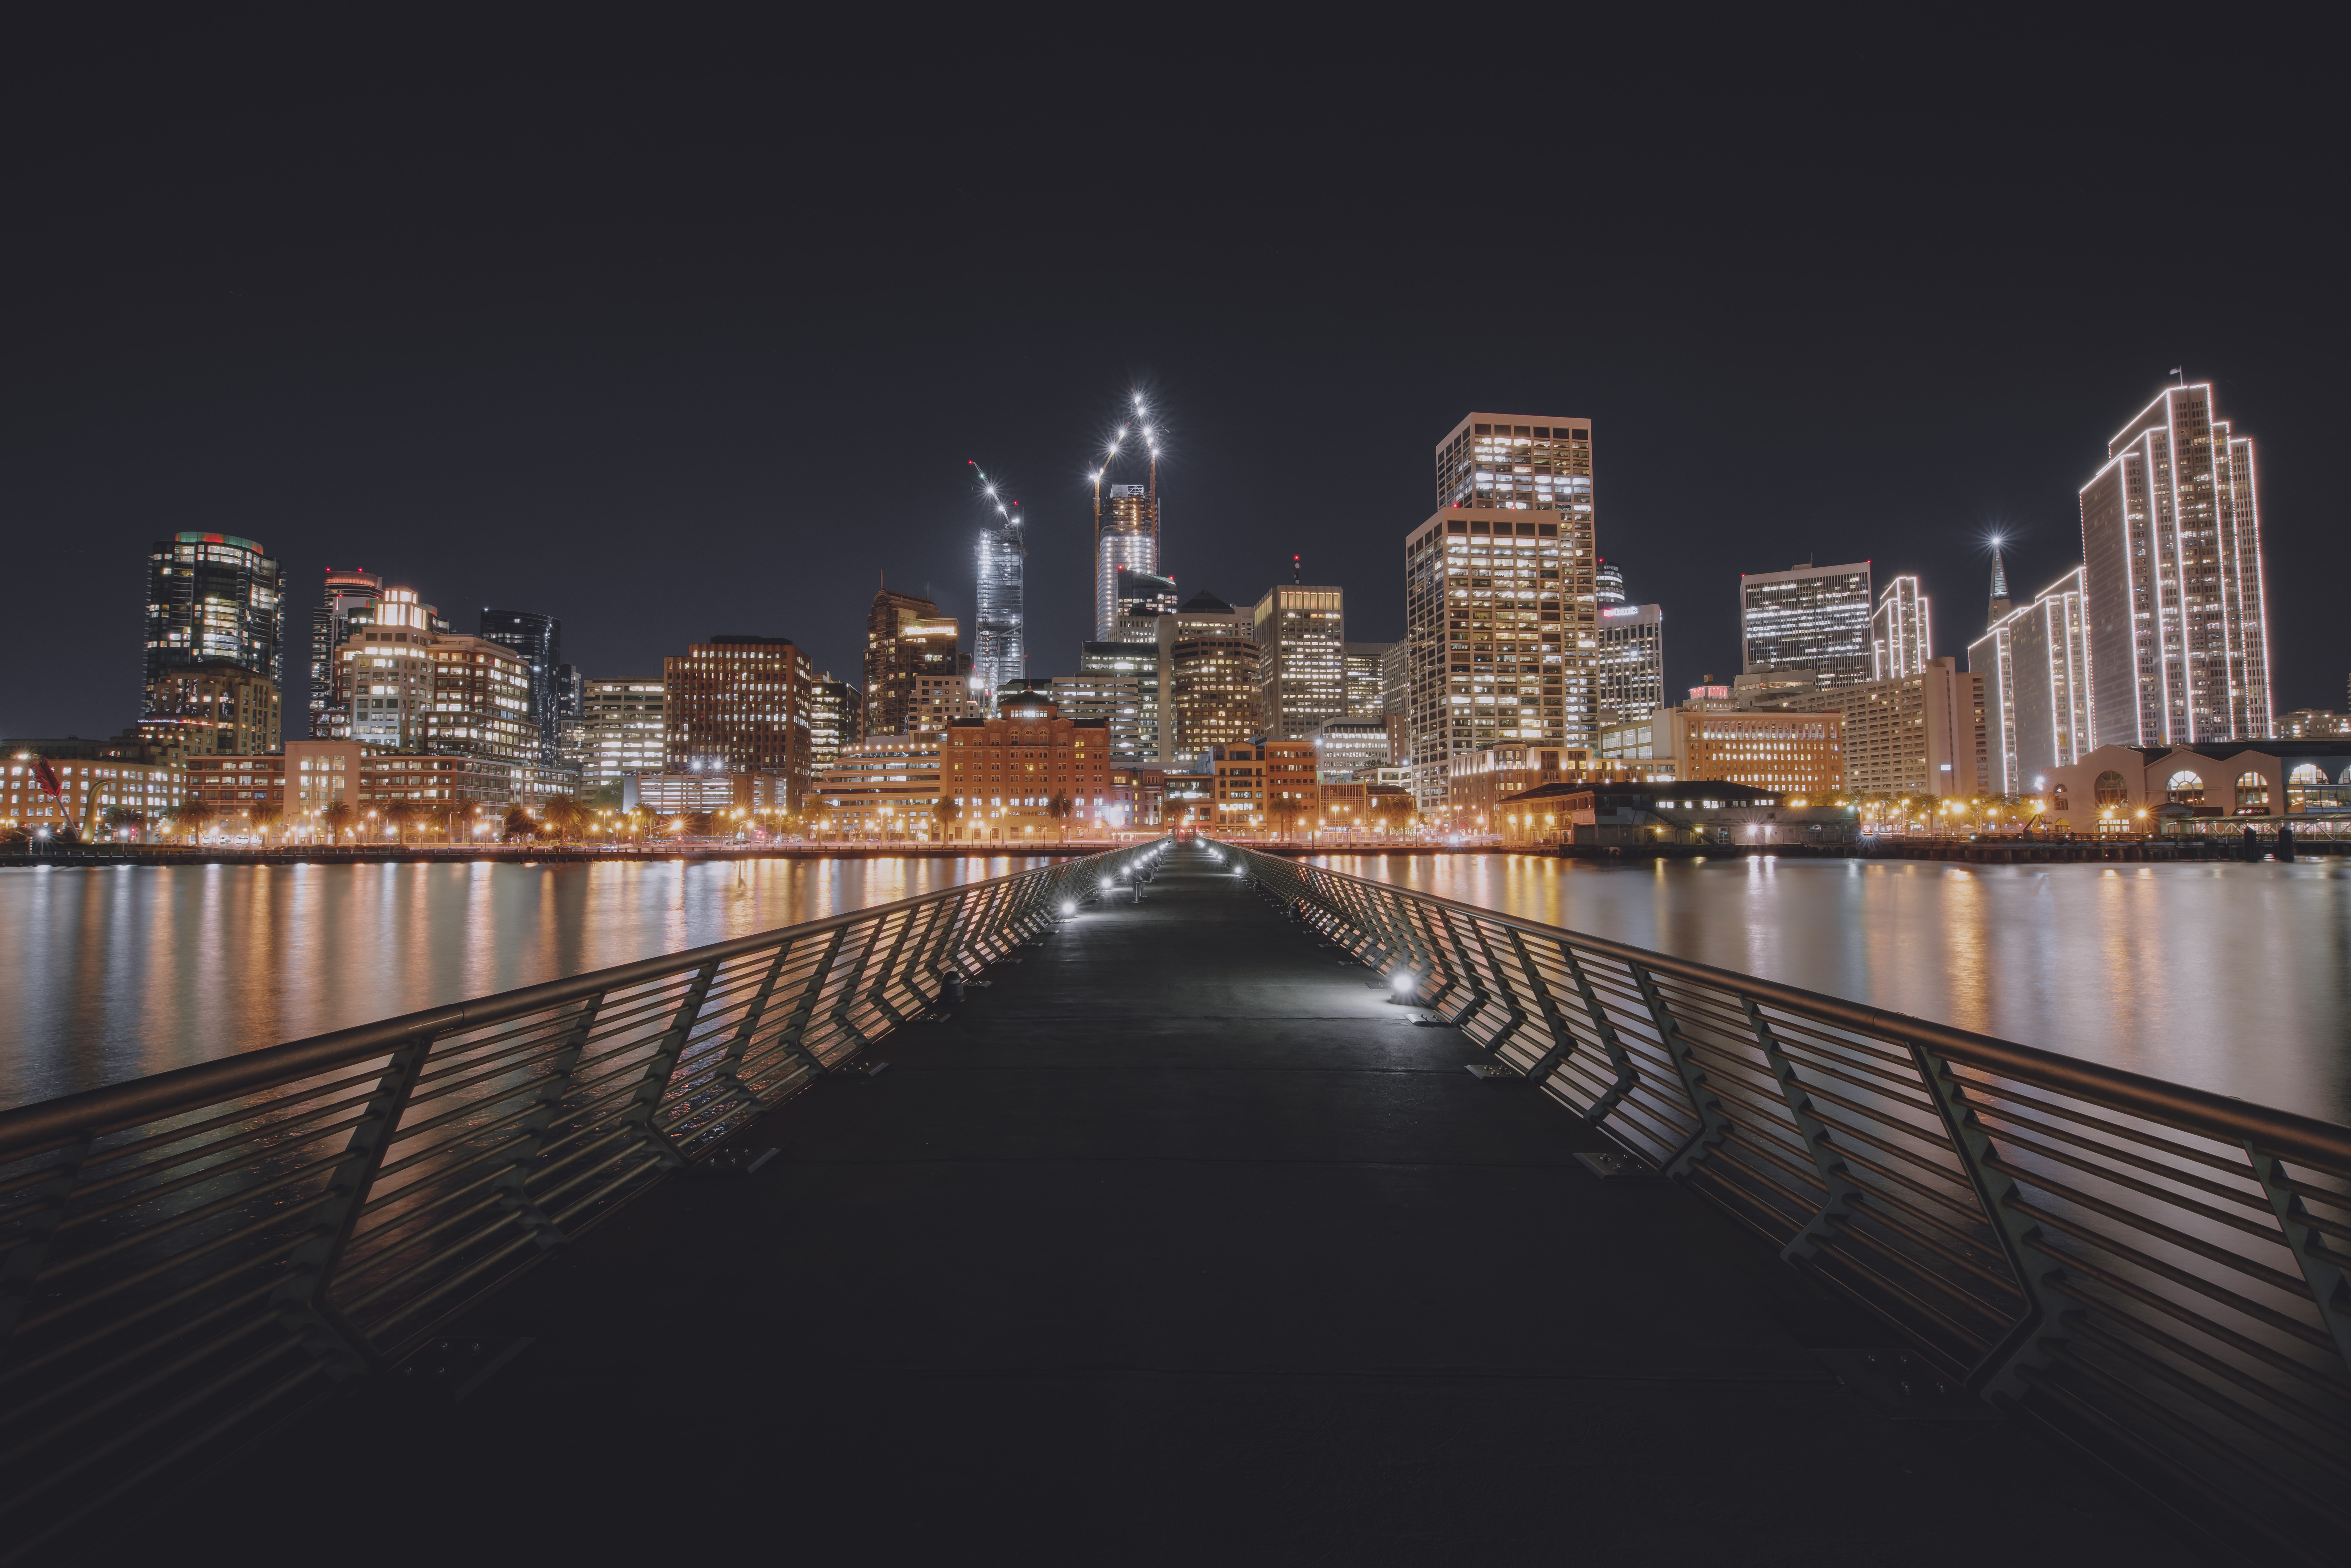 single perspective photography of foot bridge and cityscape by water